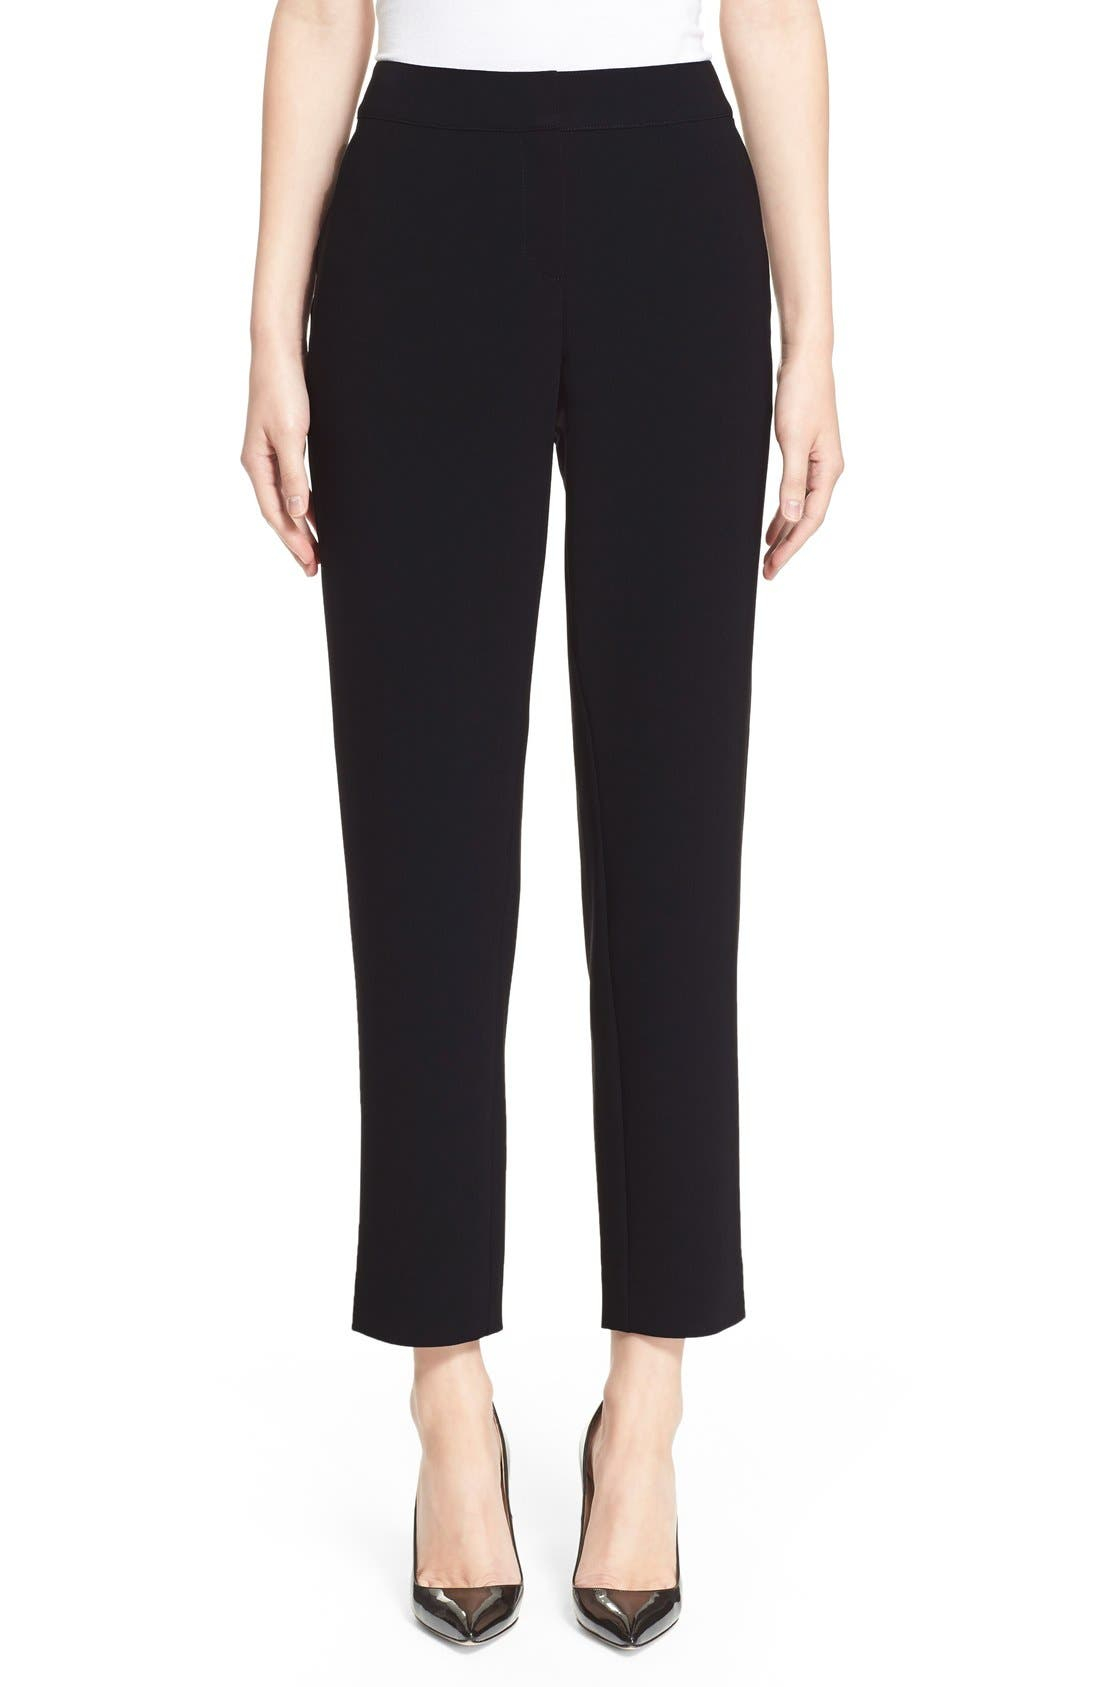 Main Image - St. John Collection 'Emma' Crop Crepe Marocain Pants